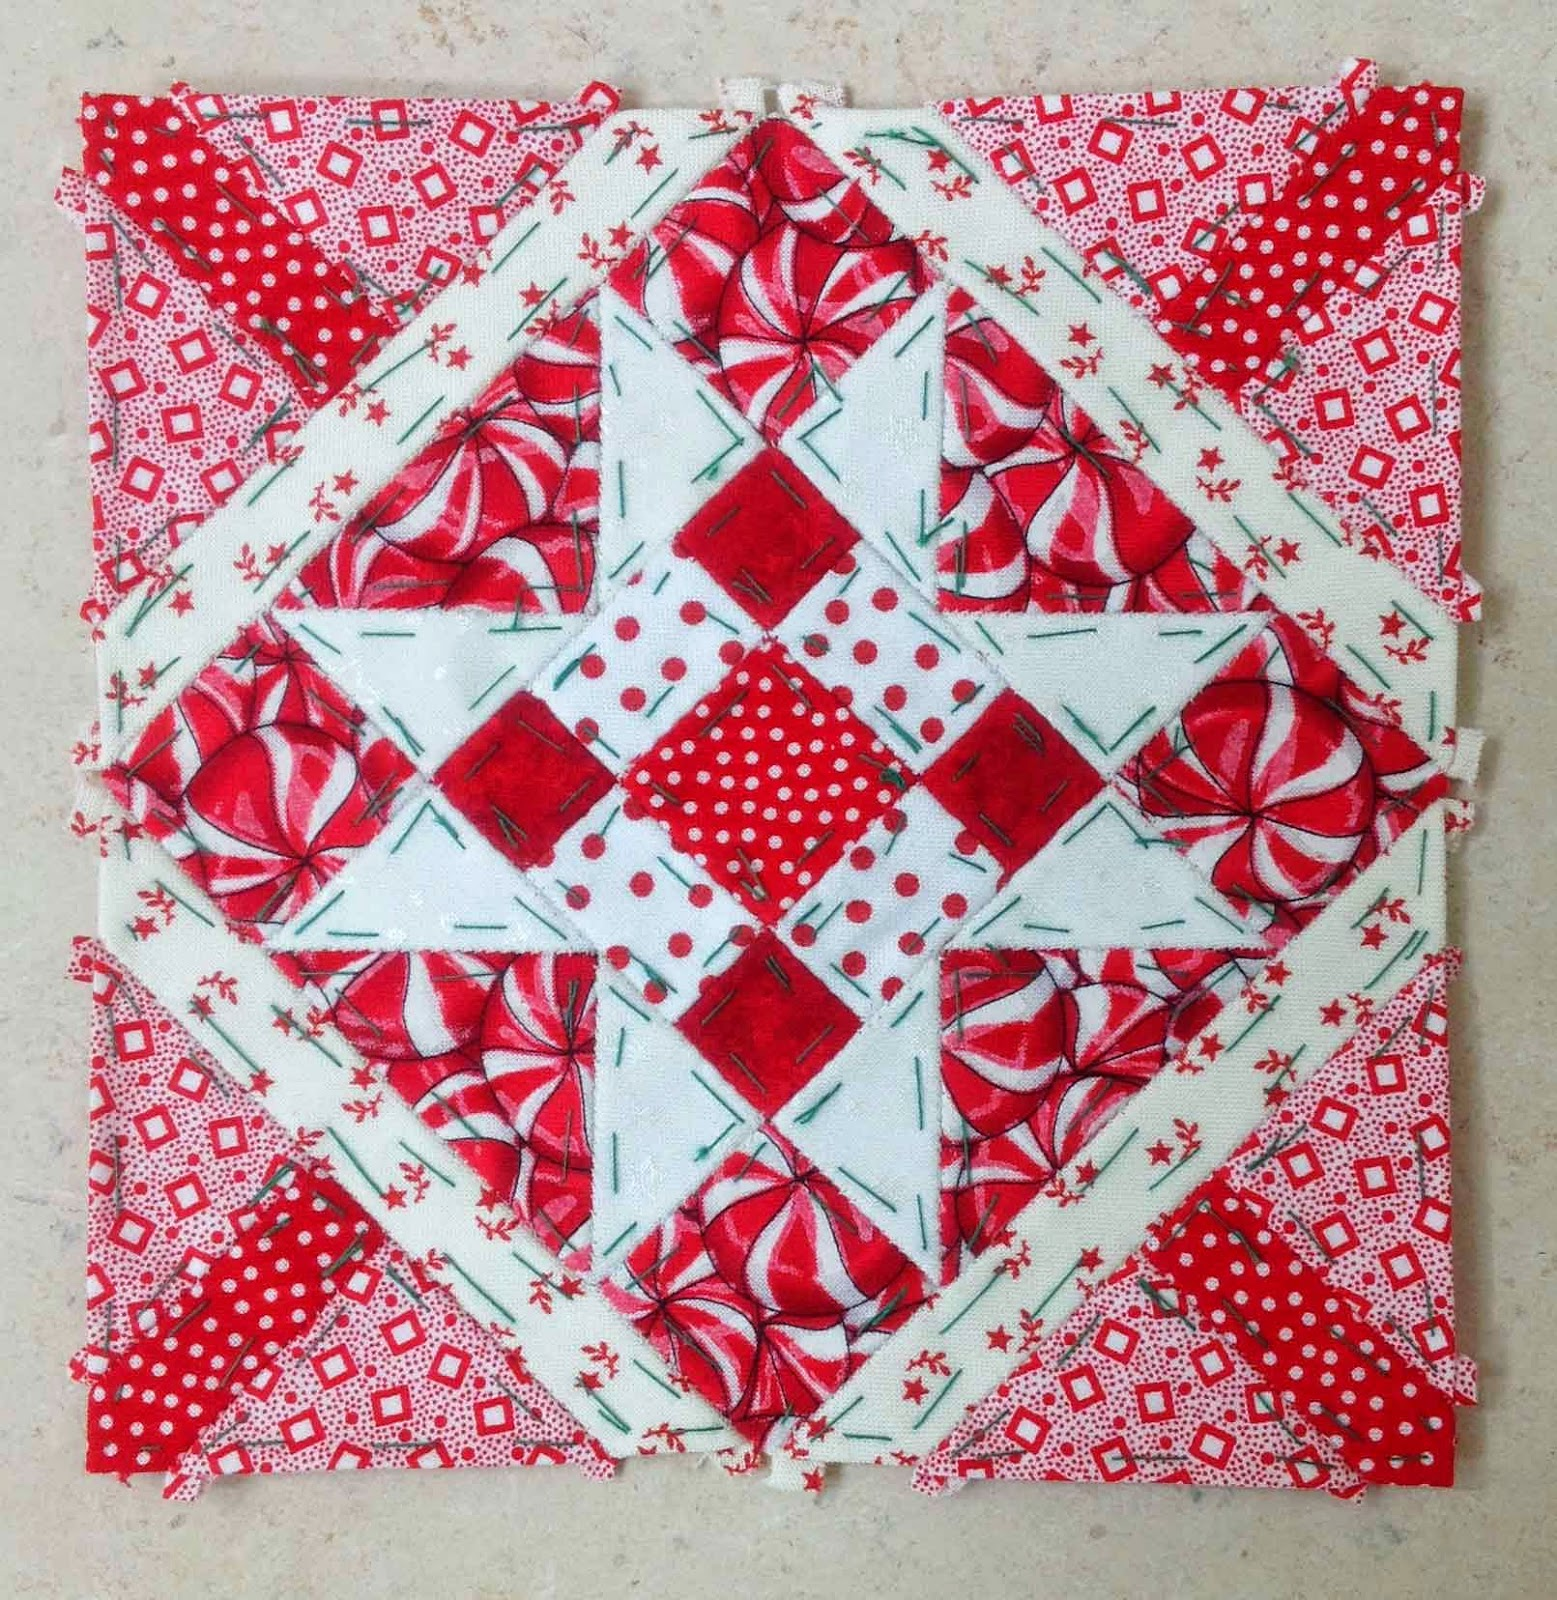 Block 54 - Nearly Insane Quilt